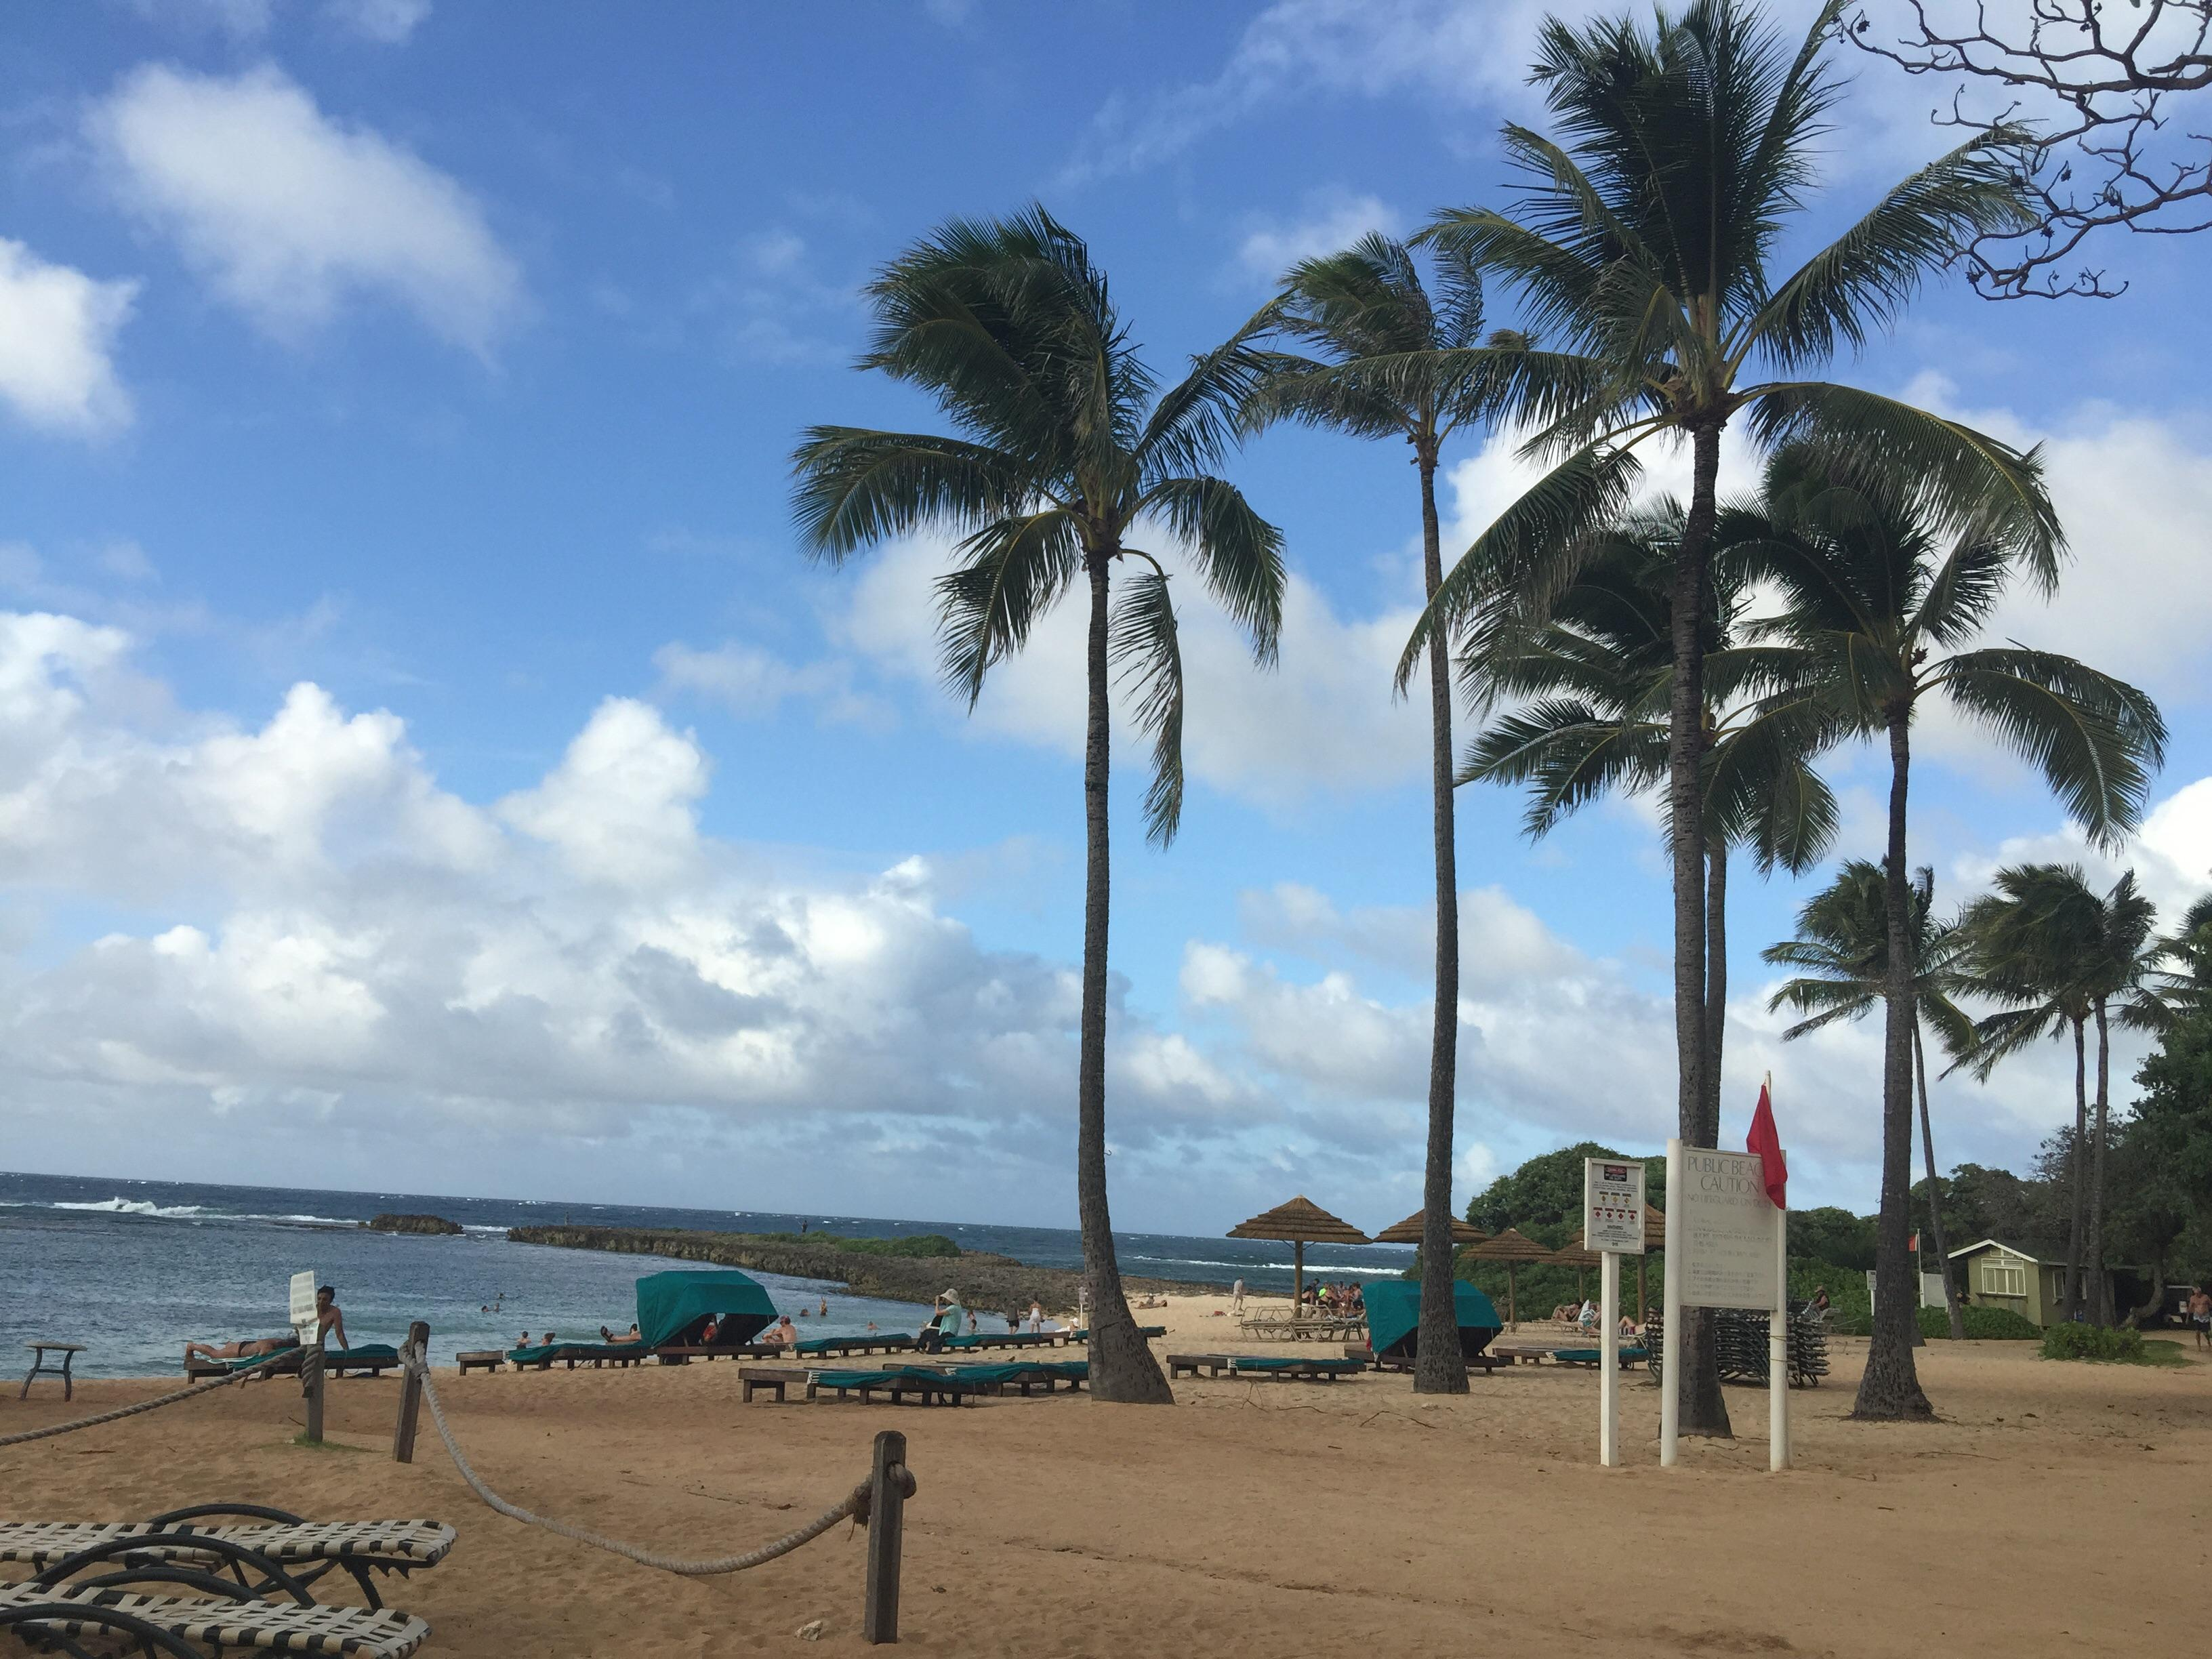 The beach with palm trees at Kuilima Bay near Turtle Bay Hotel